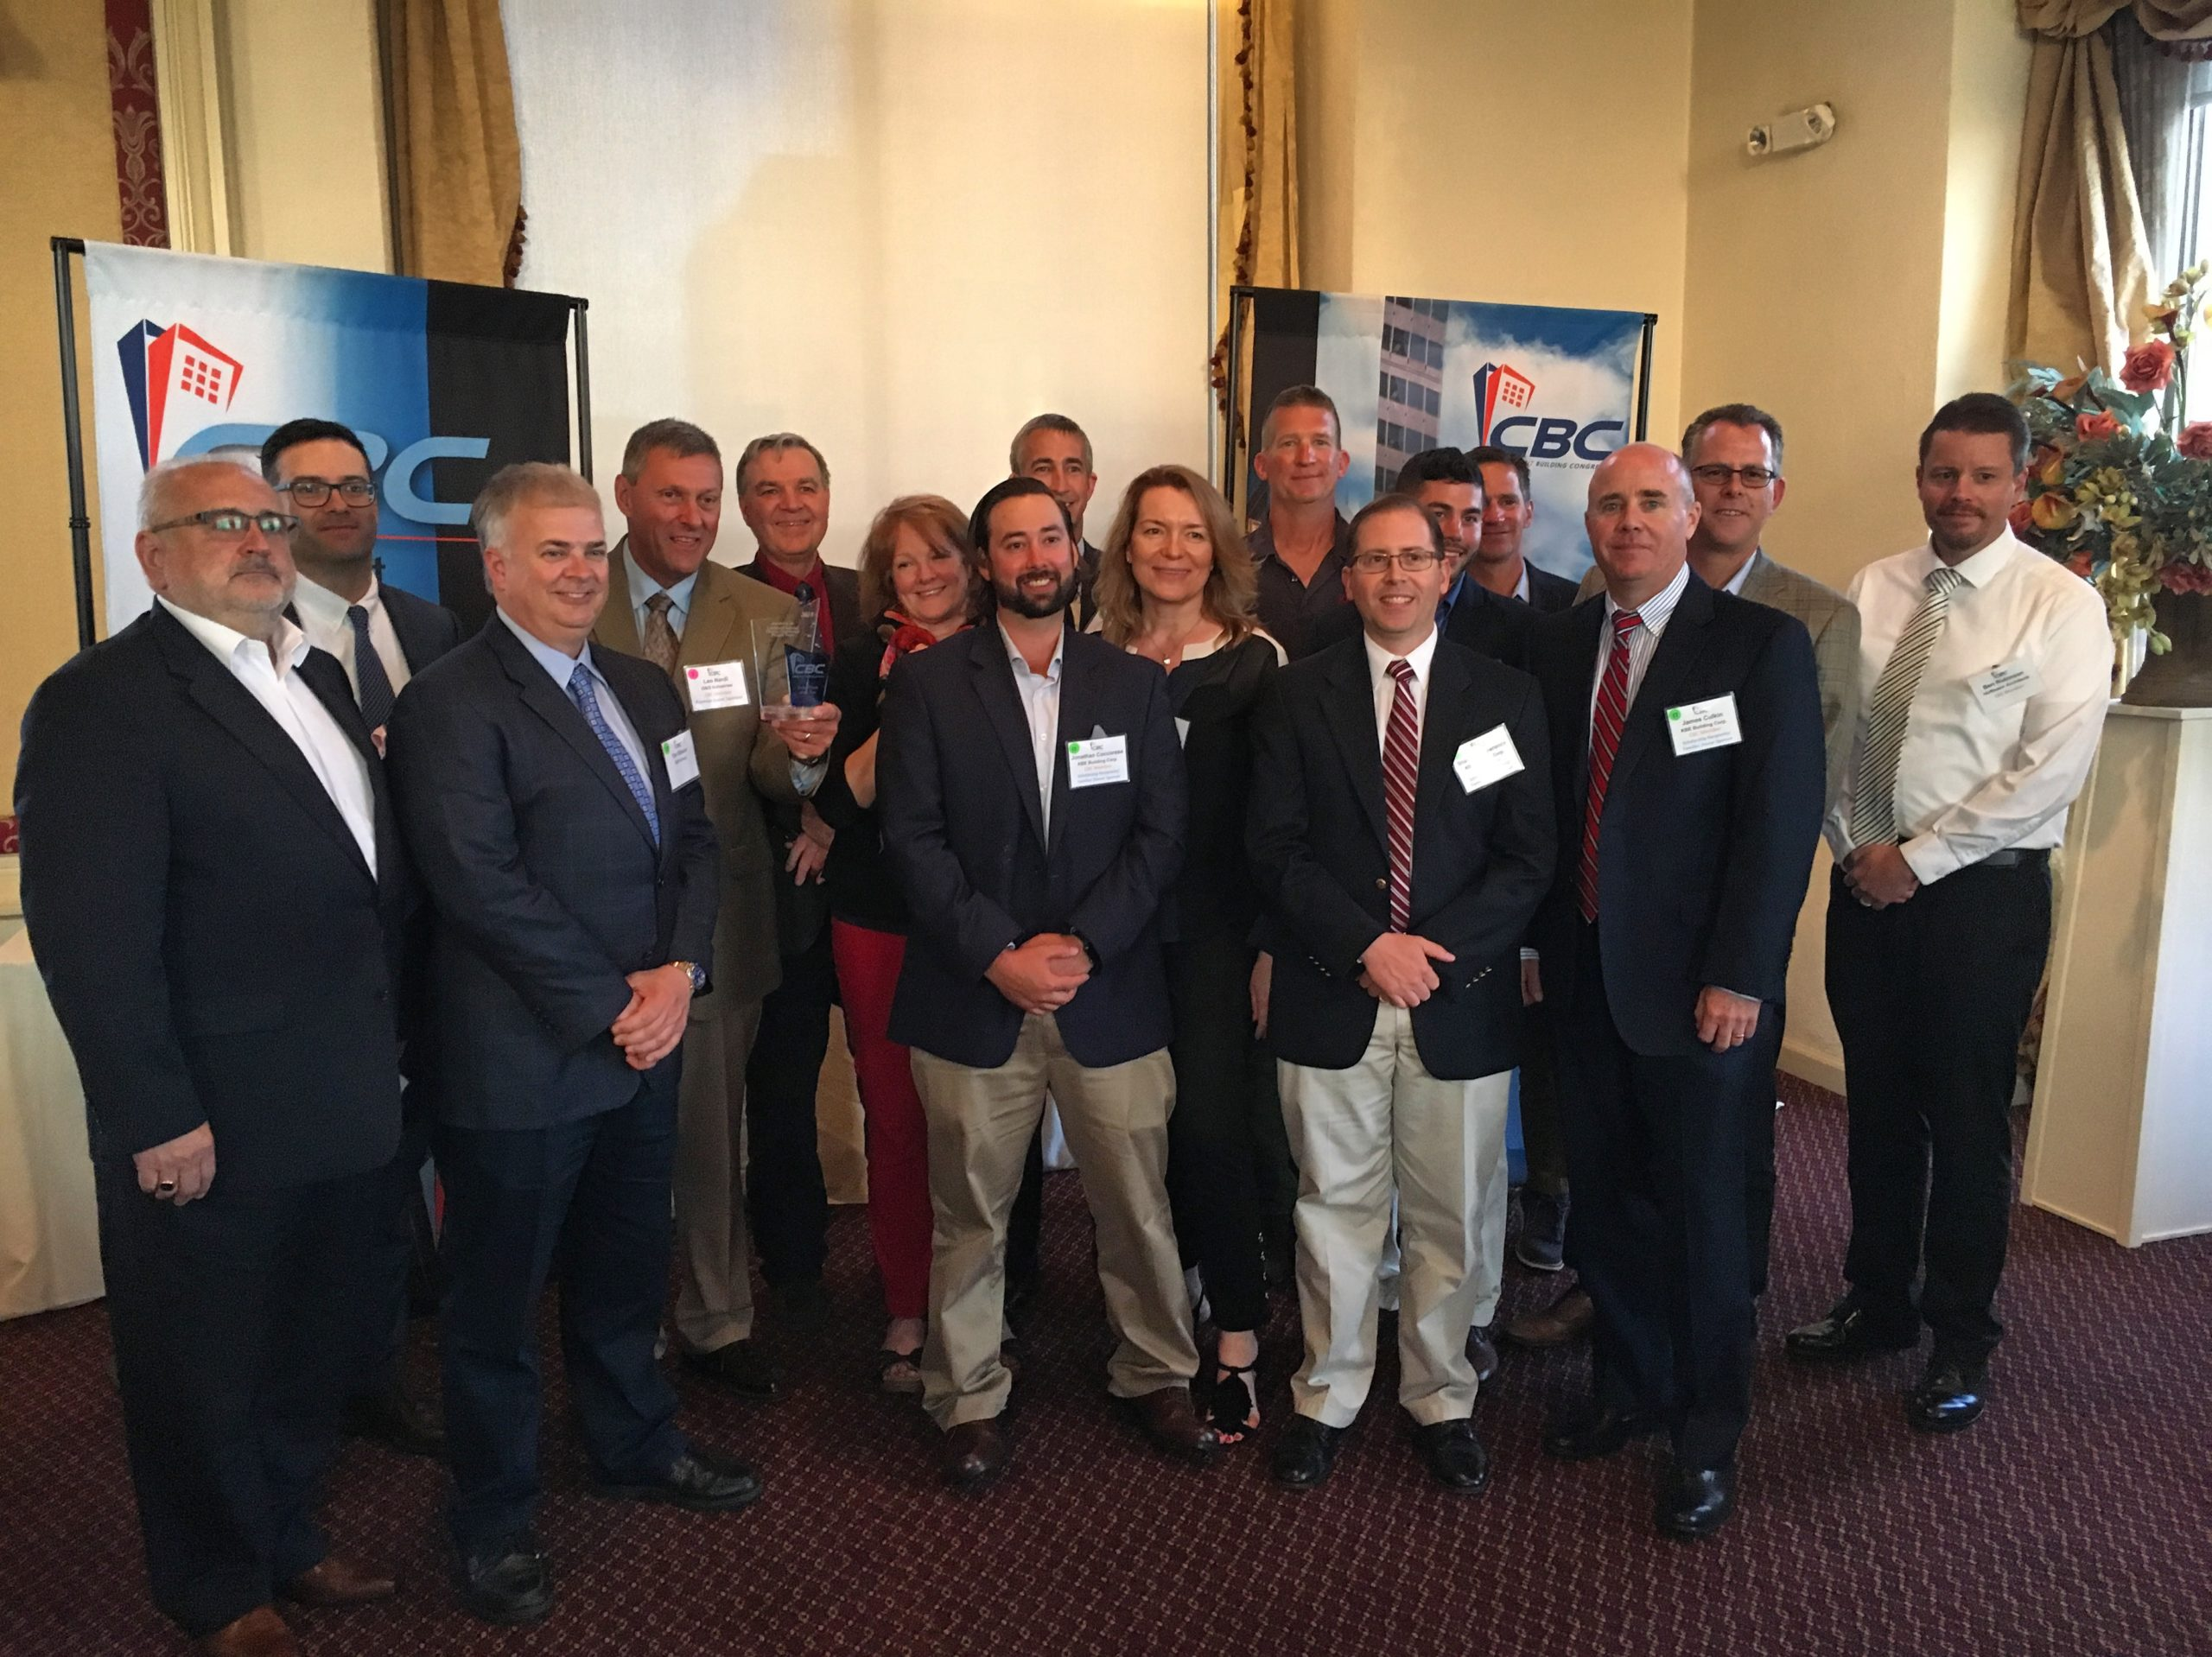 KBE's Litchfield Judicial District Courthouse Project Named Project Team of the Year by Connecticut Building Congress